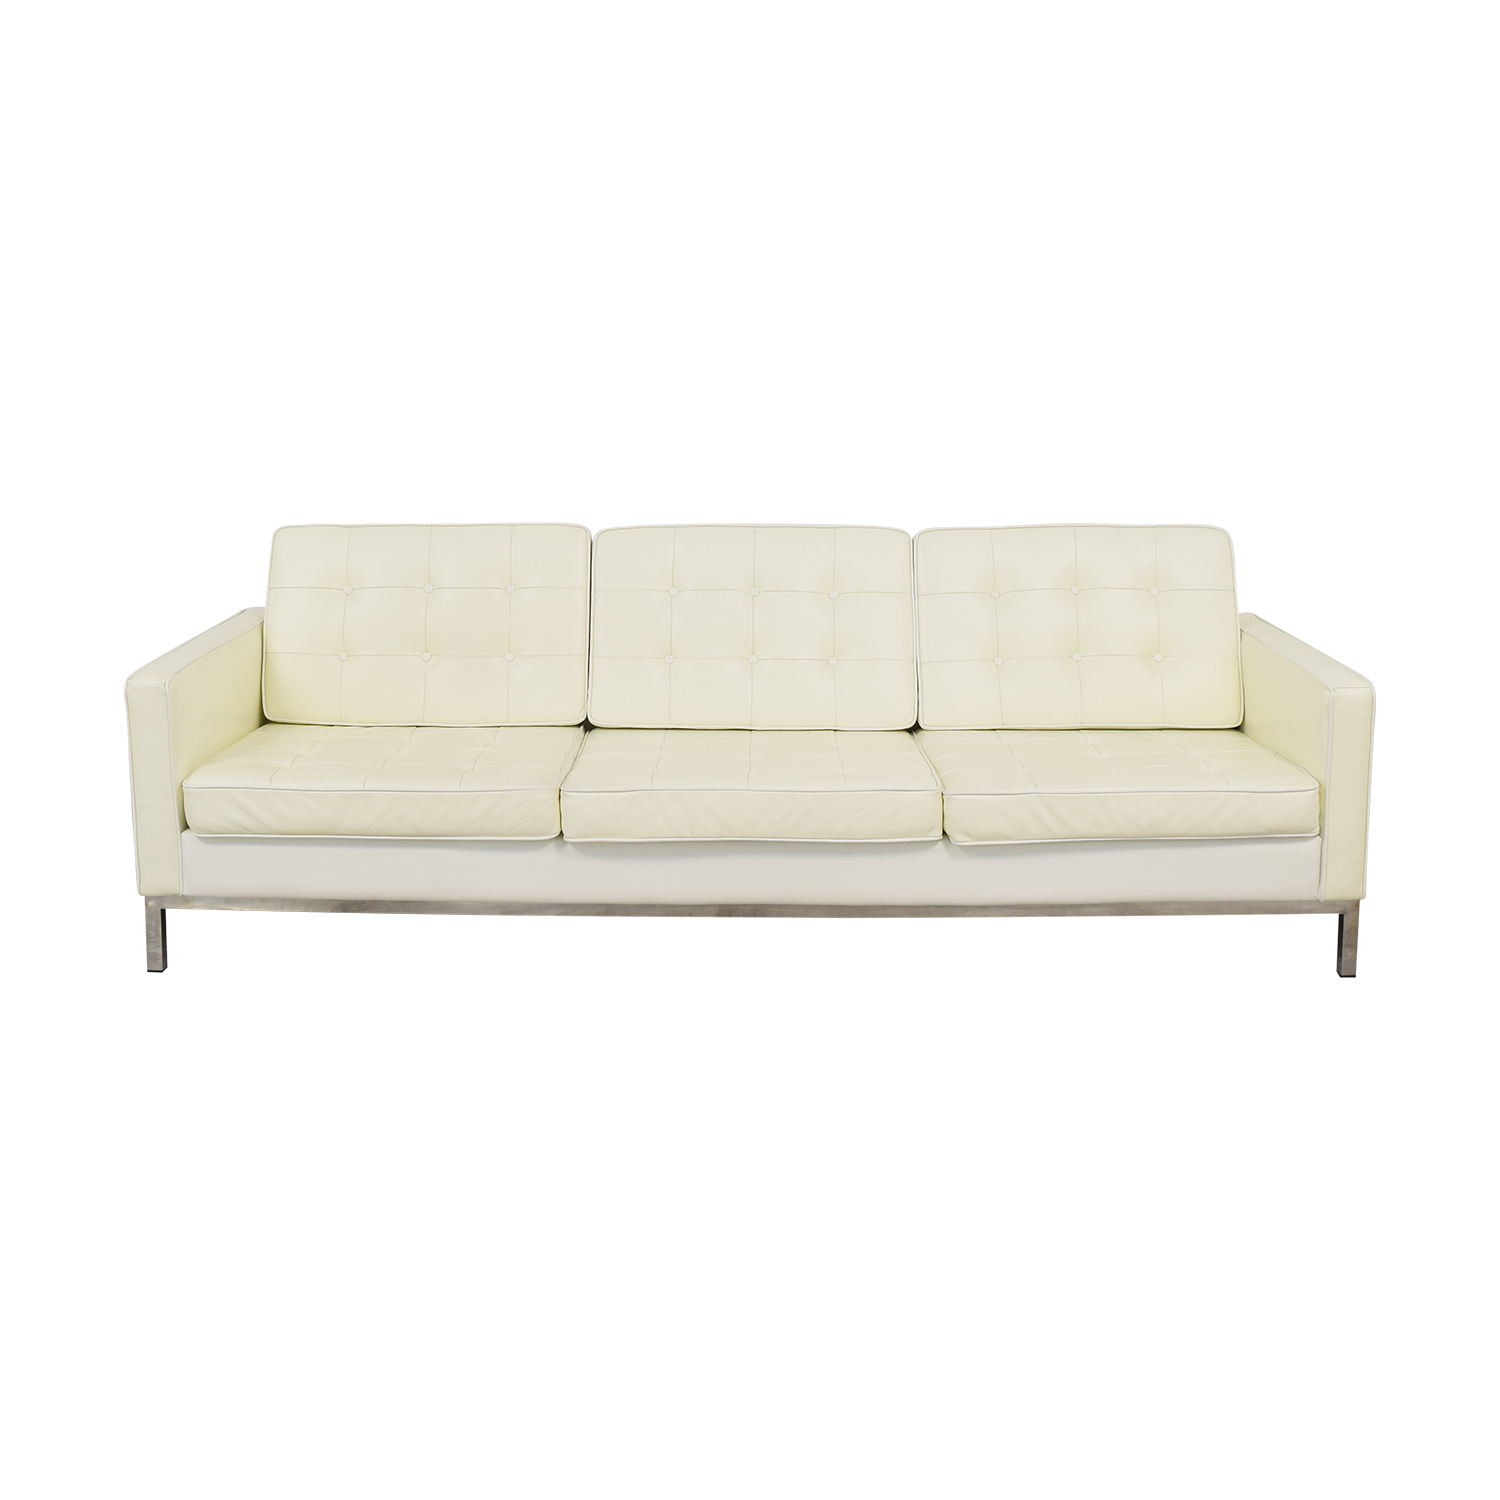 Modway Modway Mid Century Modern Sofa for sale